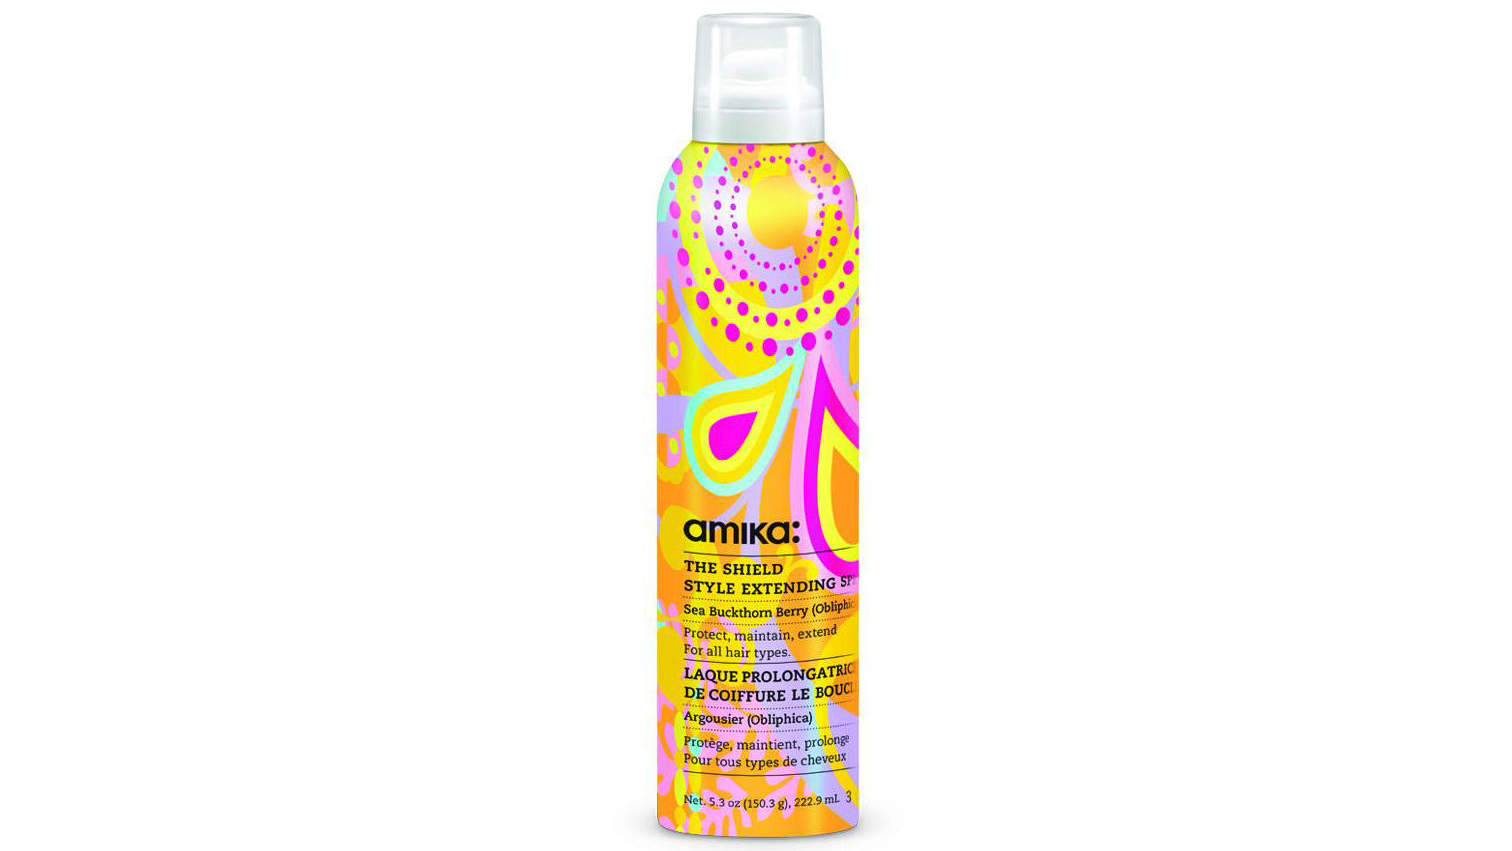 The Shield Style Extending Spray by amika.